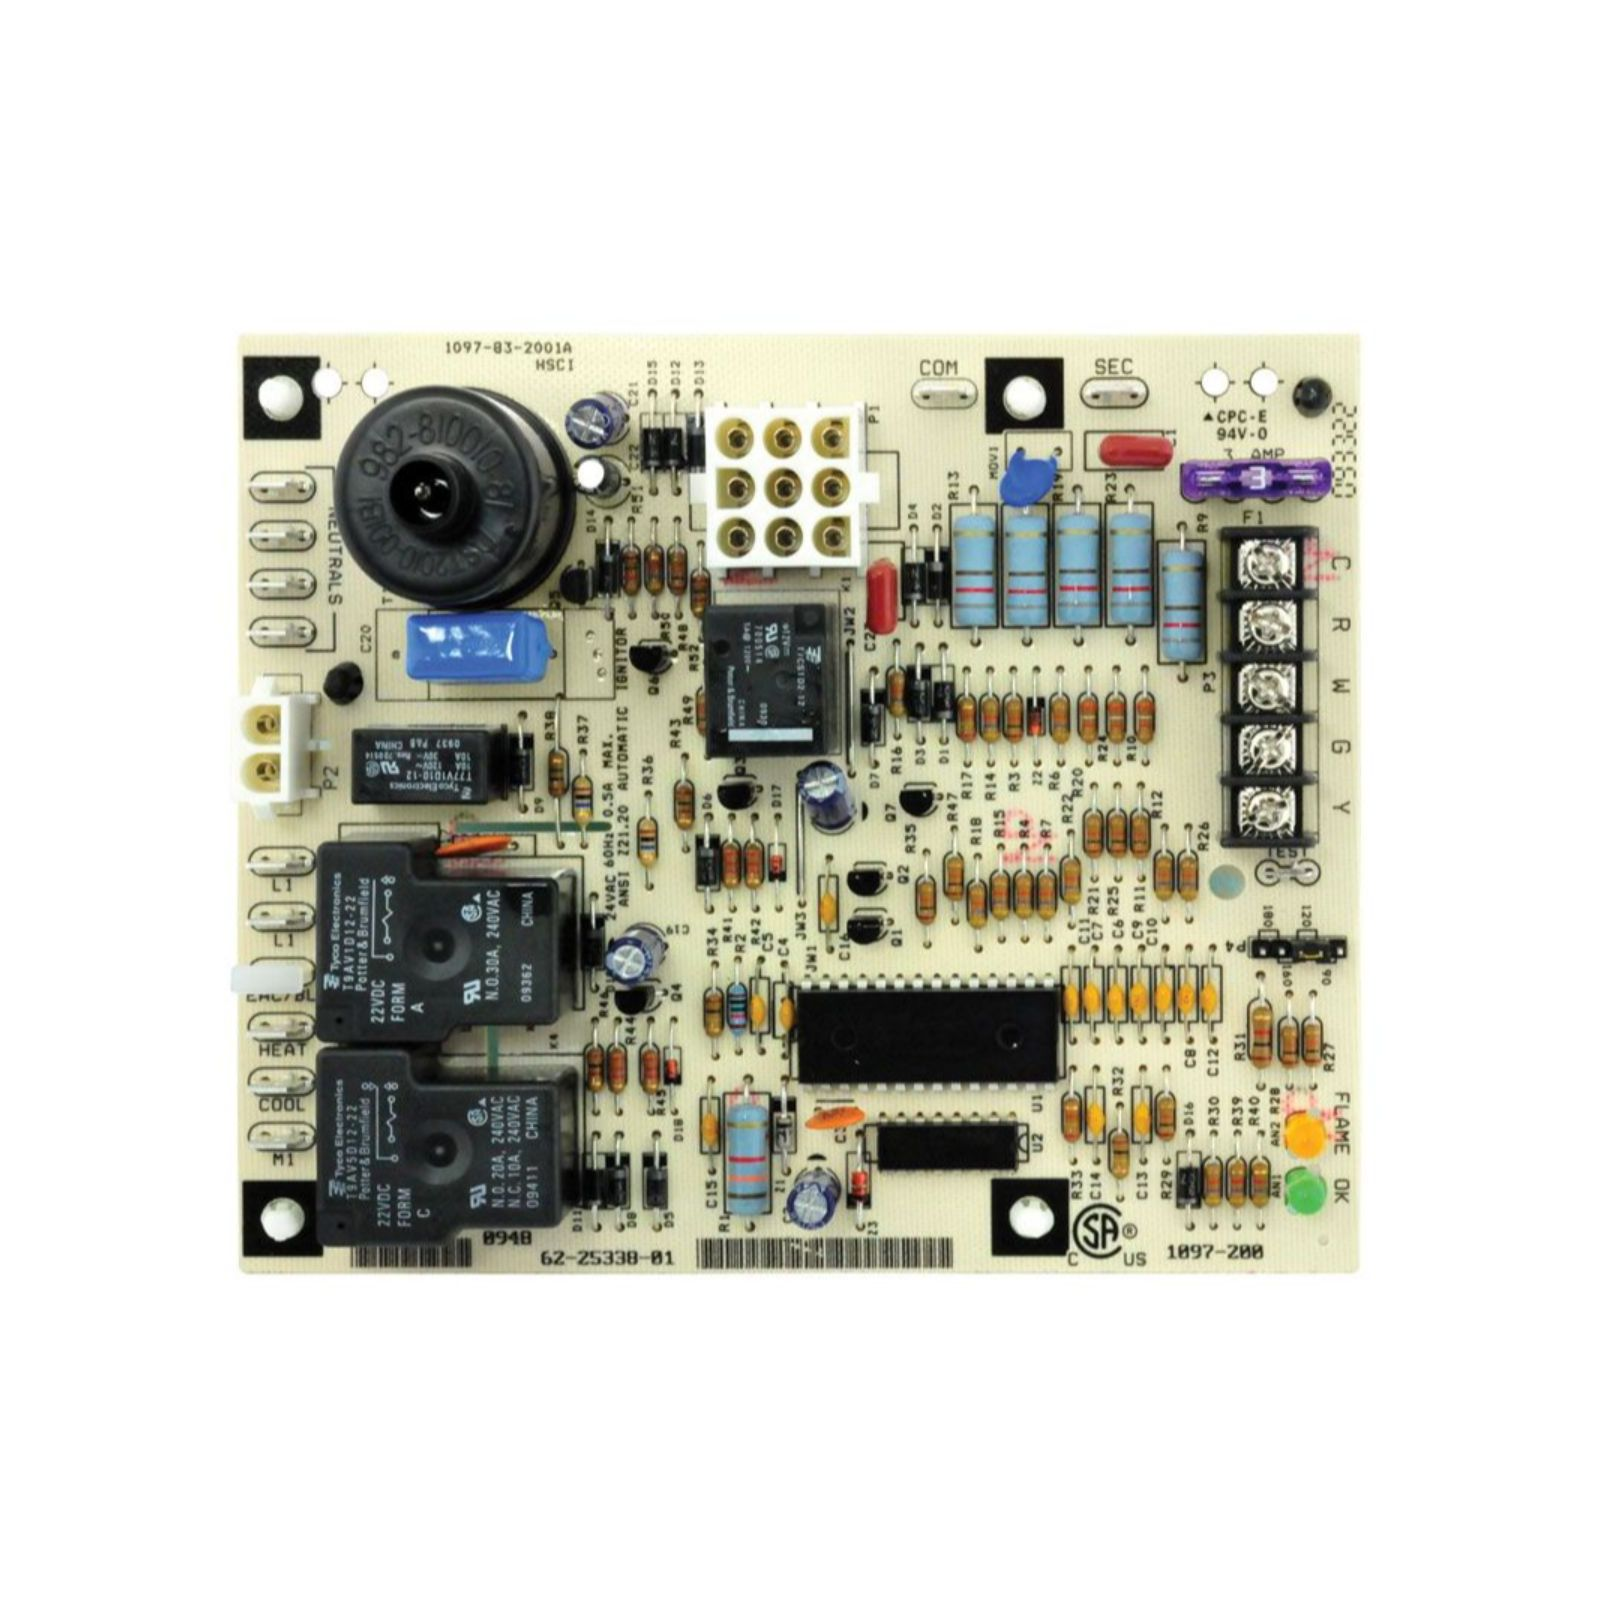 UTEC 62-25338-01 - Integrated Furnace Control Board (IFC)